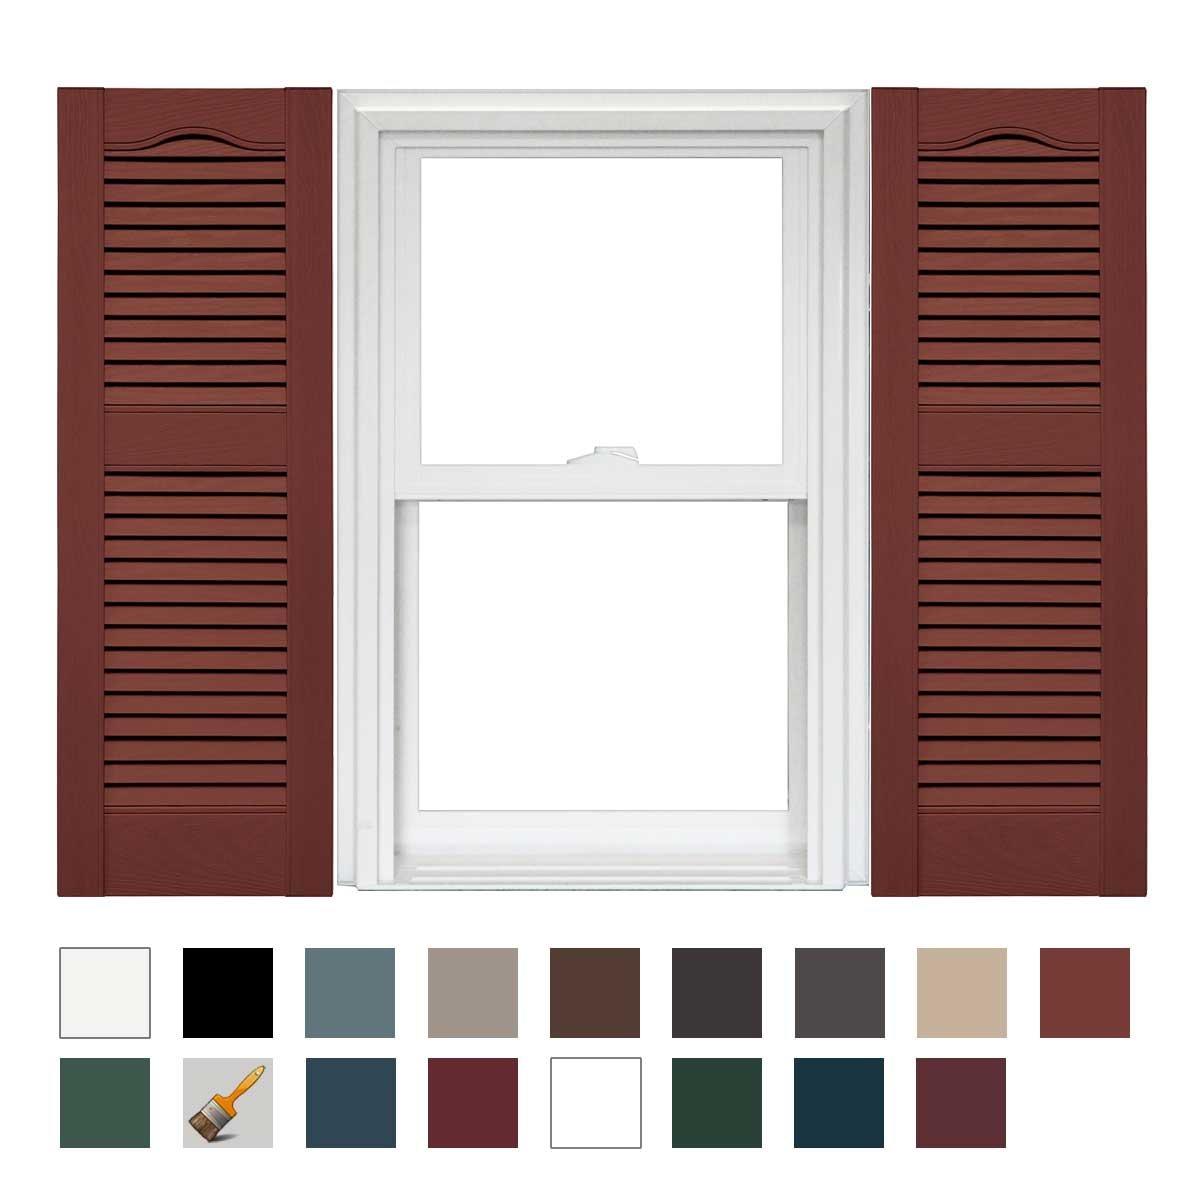 Mid America Cathedral Open Louver Vinyl Standard Shutter (1 Pair) - 12 x 60 027 Burgundy Red by Mid America